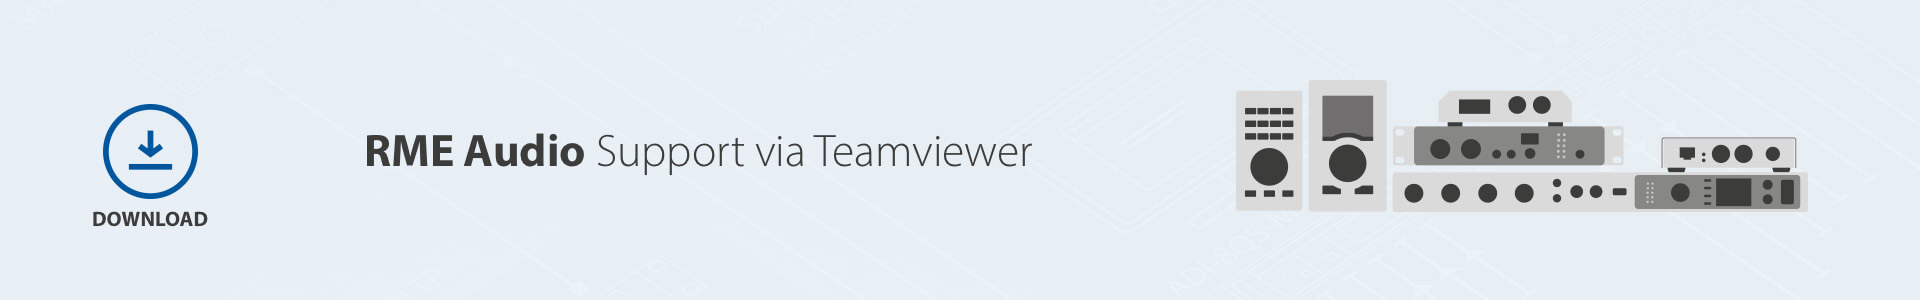 RME Audio Teamviewer Support